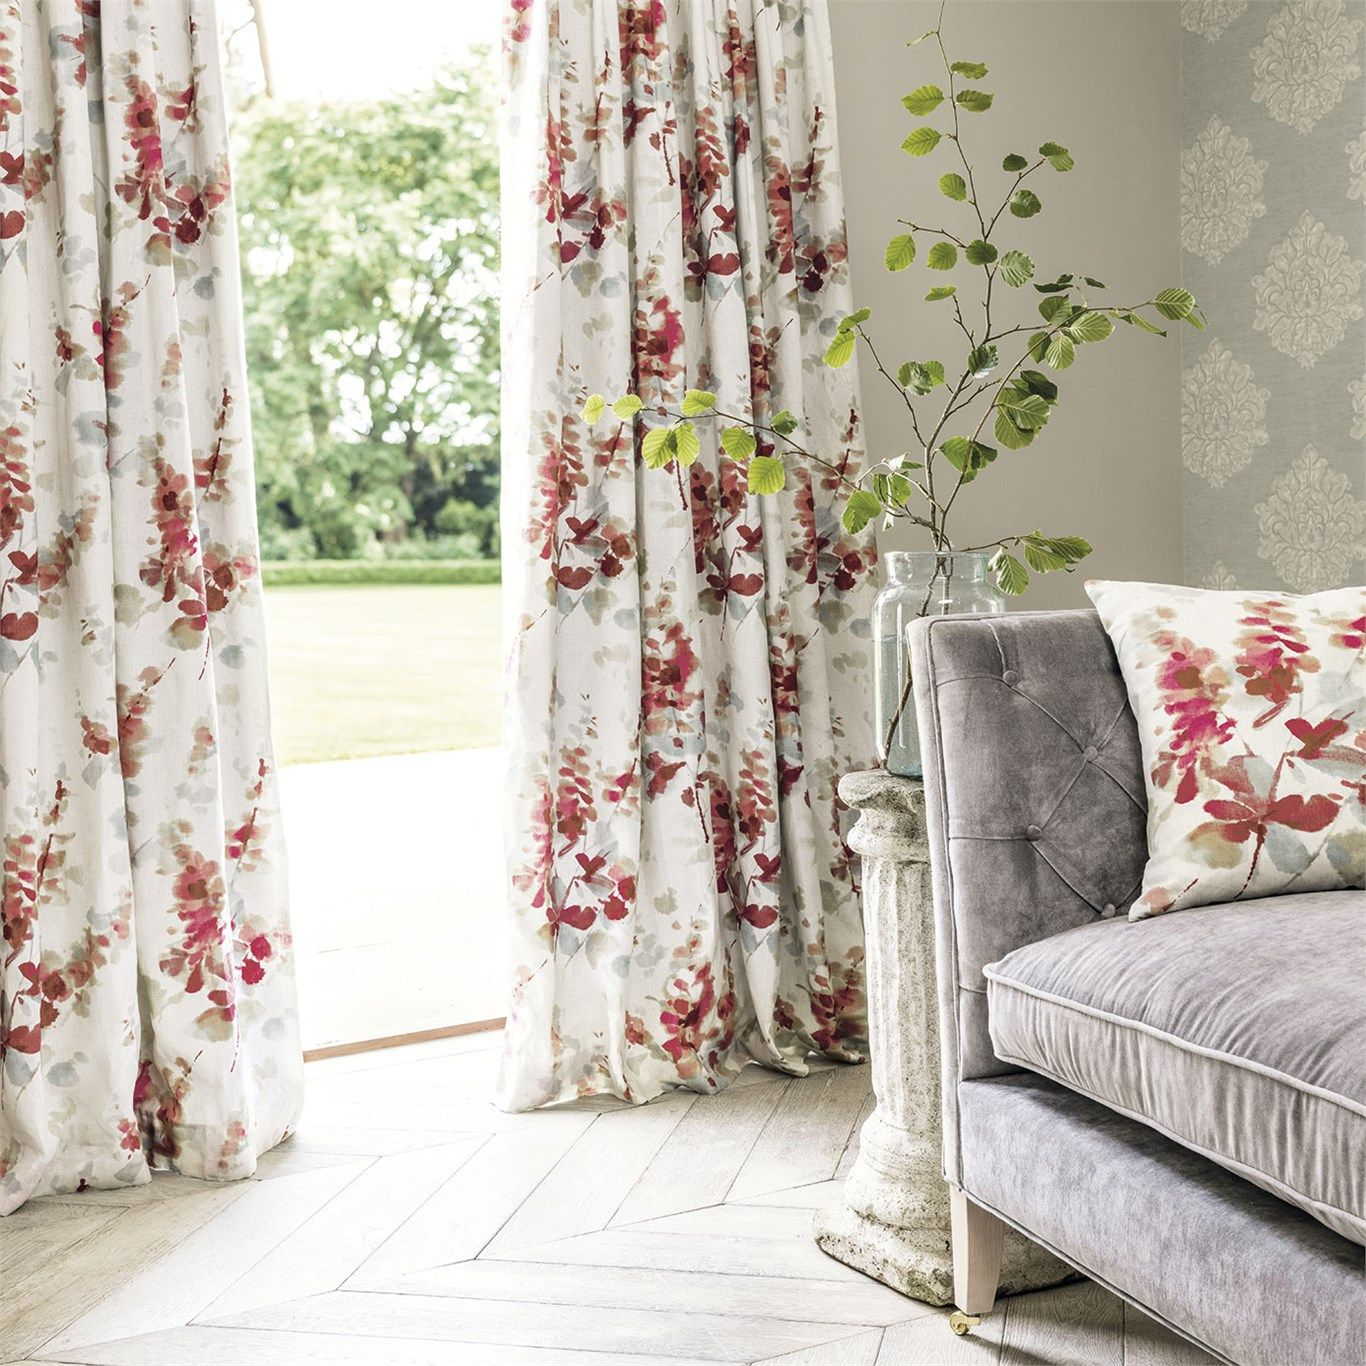 Sanderson red modern flowers fabric for drapes